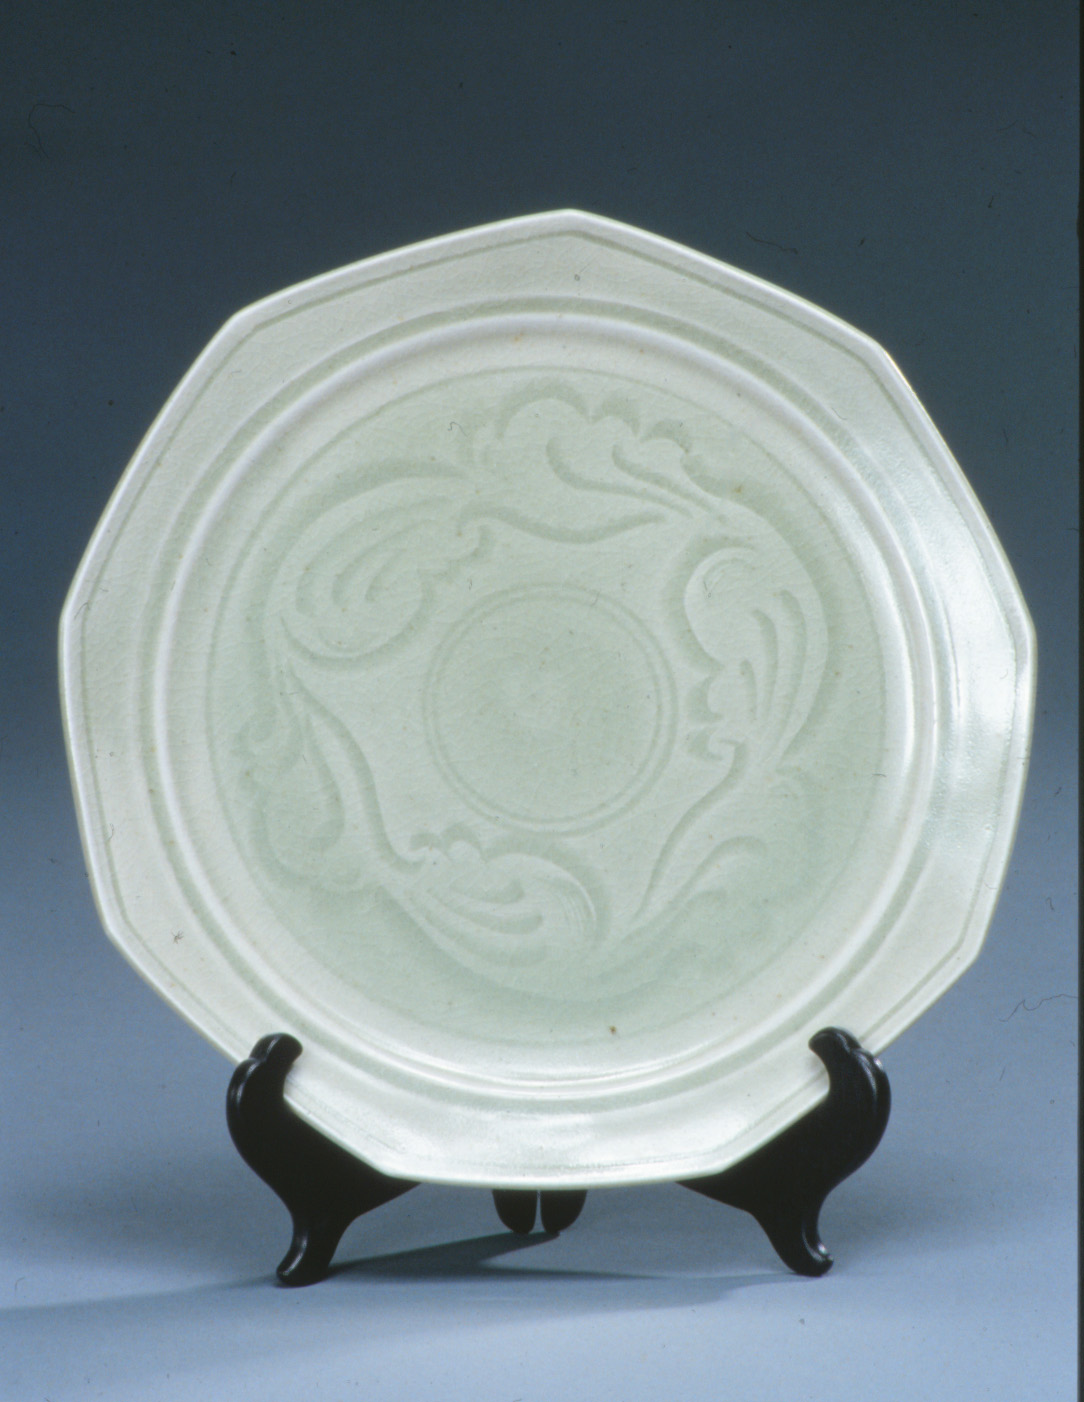 Carved porcelain plate with Northern celadon glaze